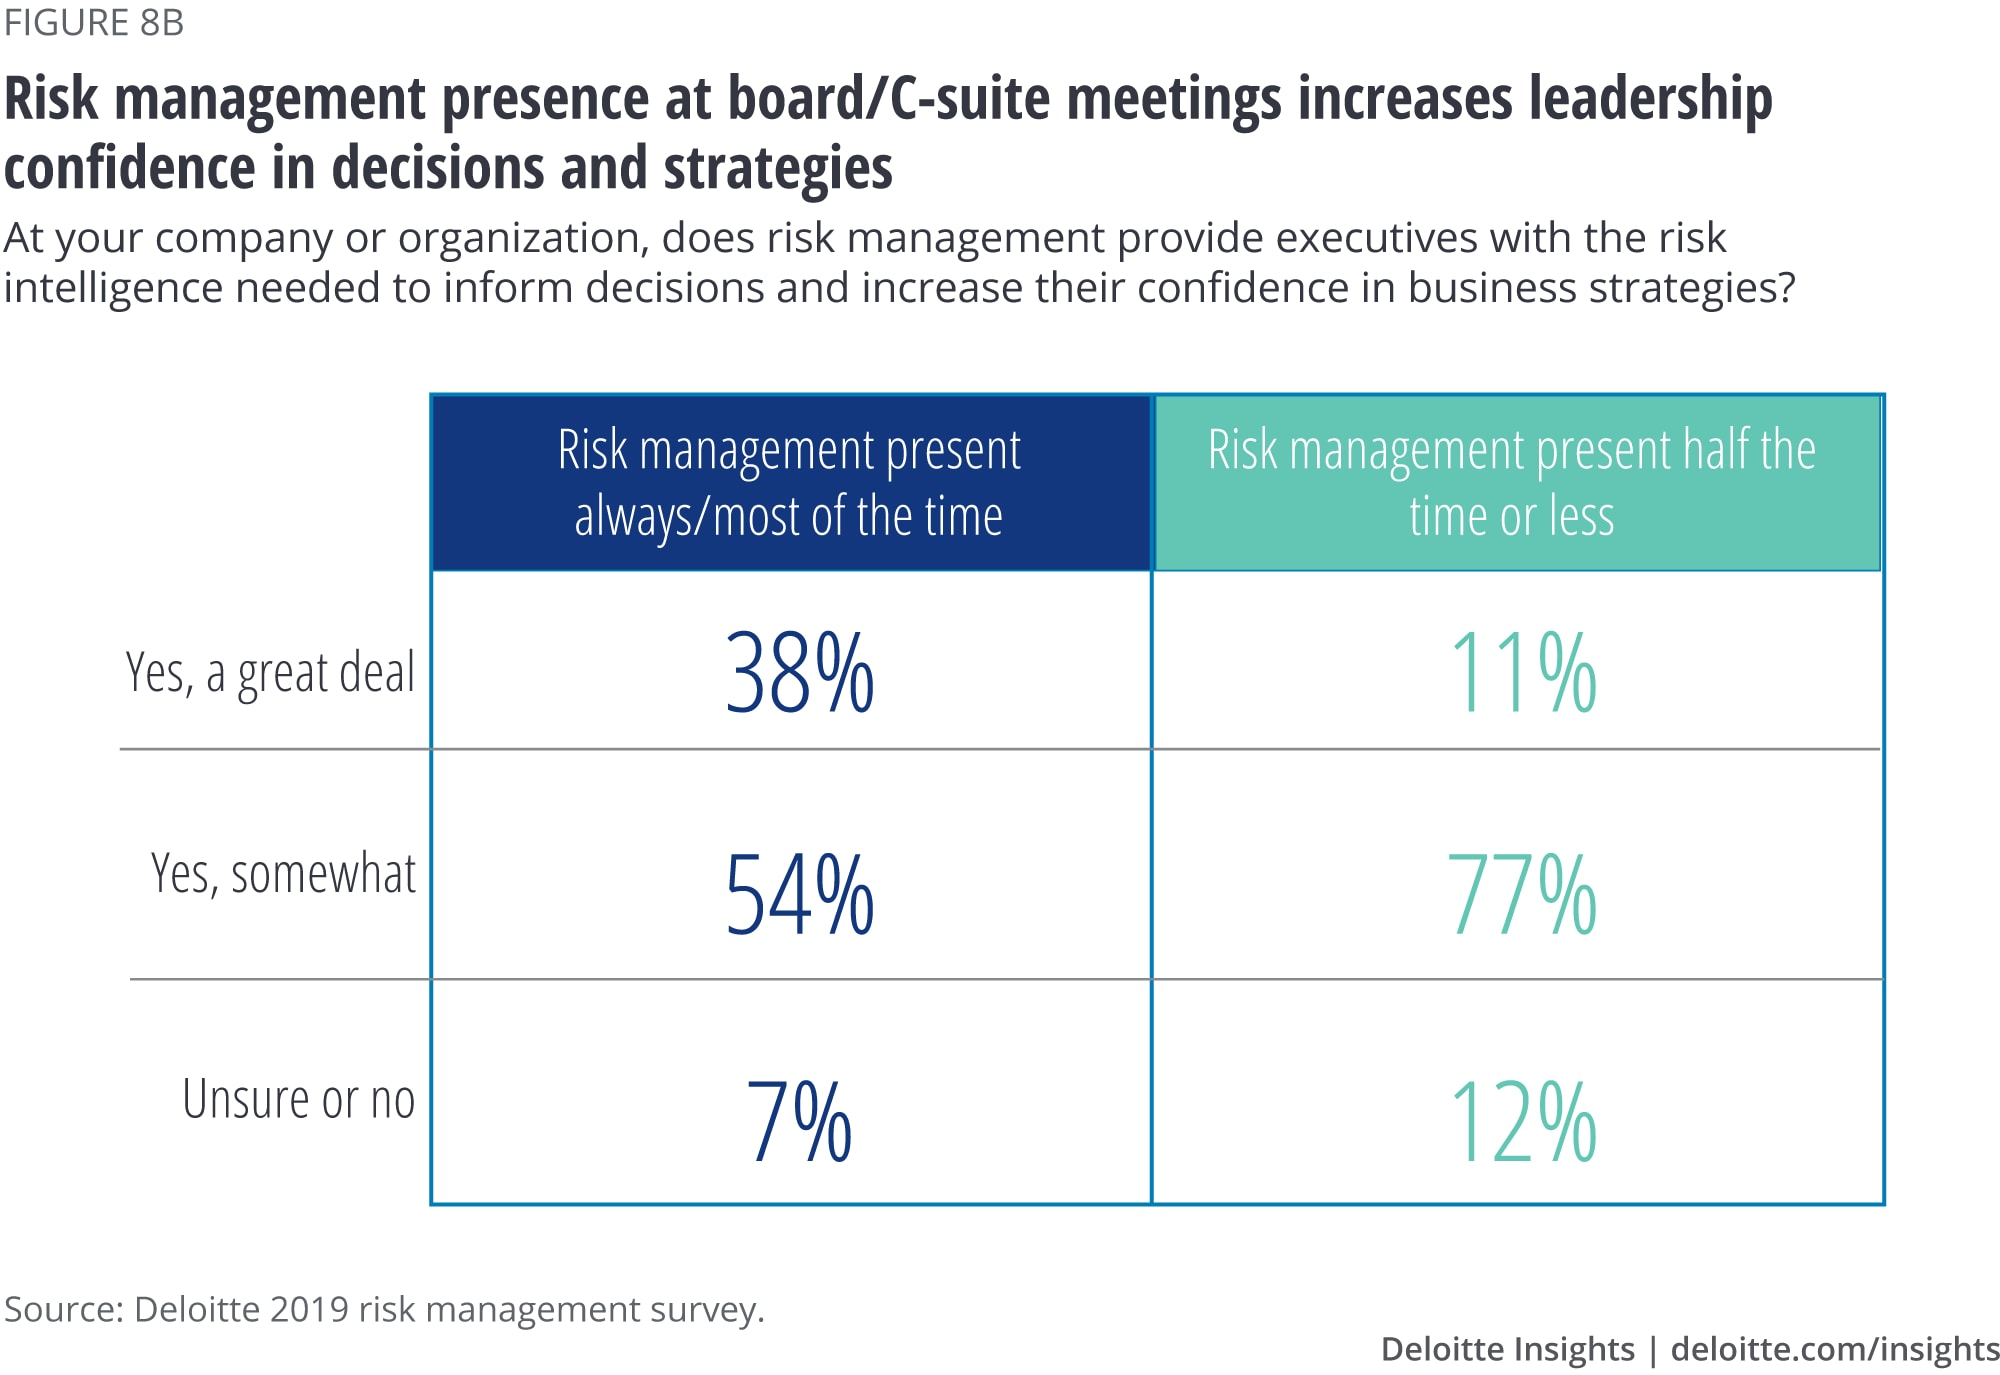 Risk management presence at board/C-suite meetings increases leadership confidence in decisions and strategies